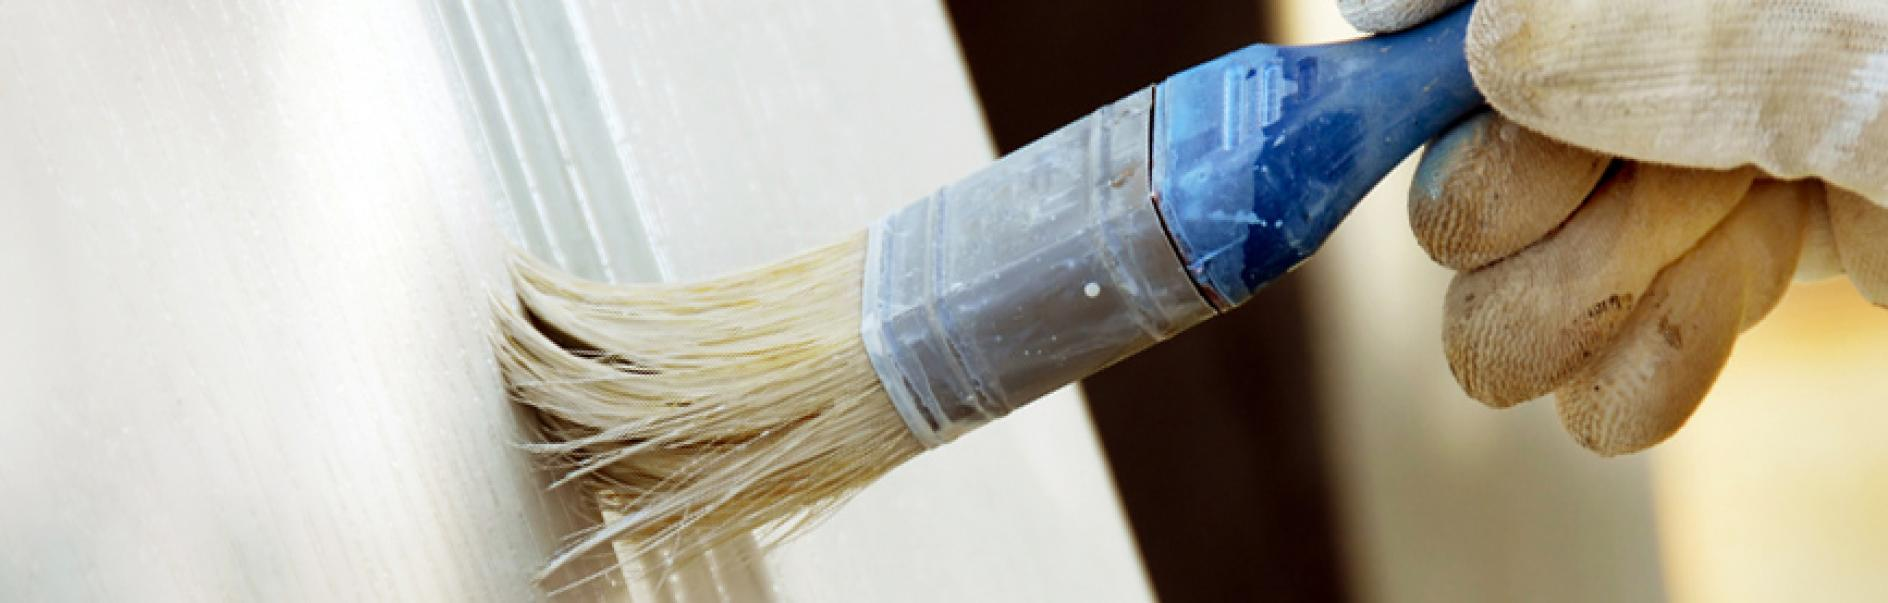 Woodworm Will Painting Wood Help